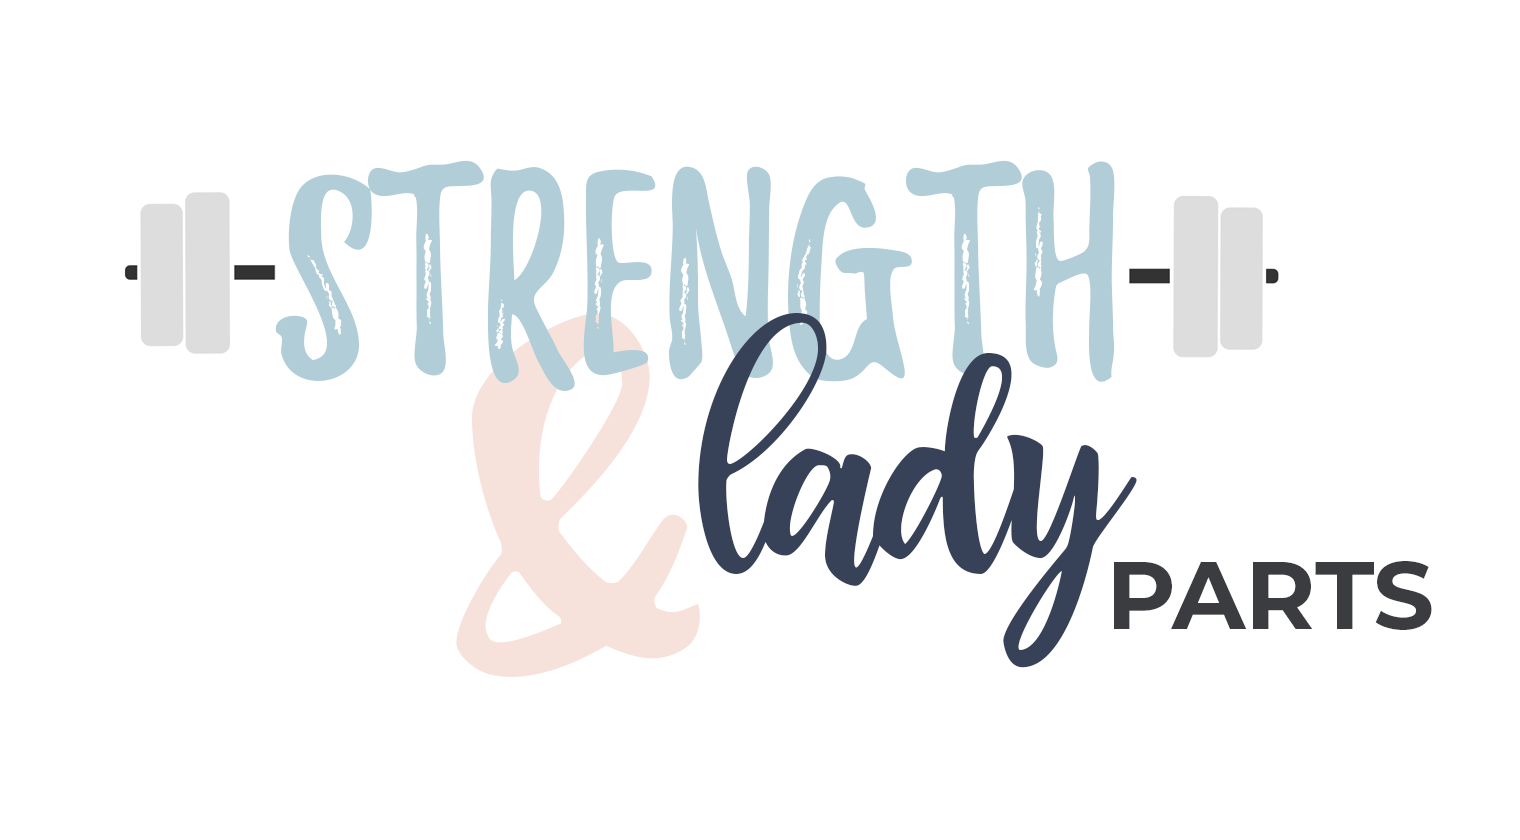 Strength & Lady Parts